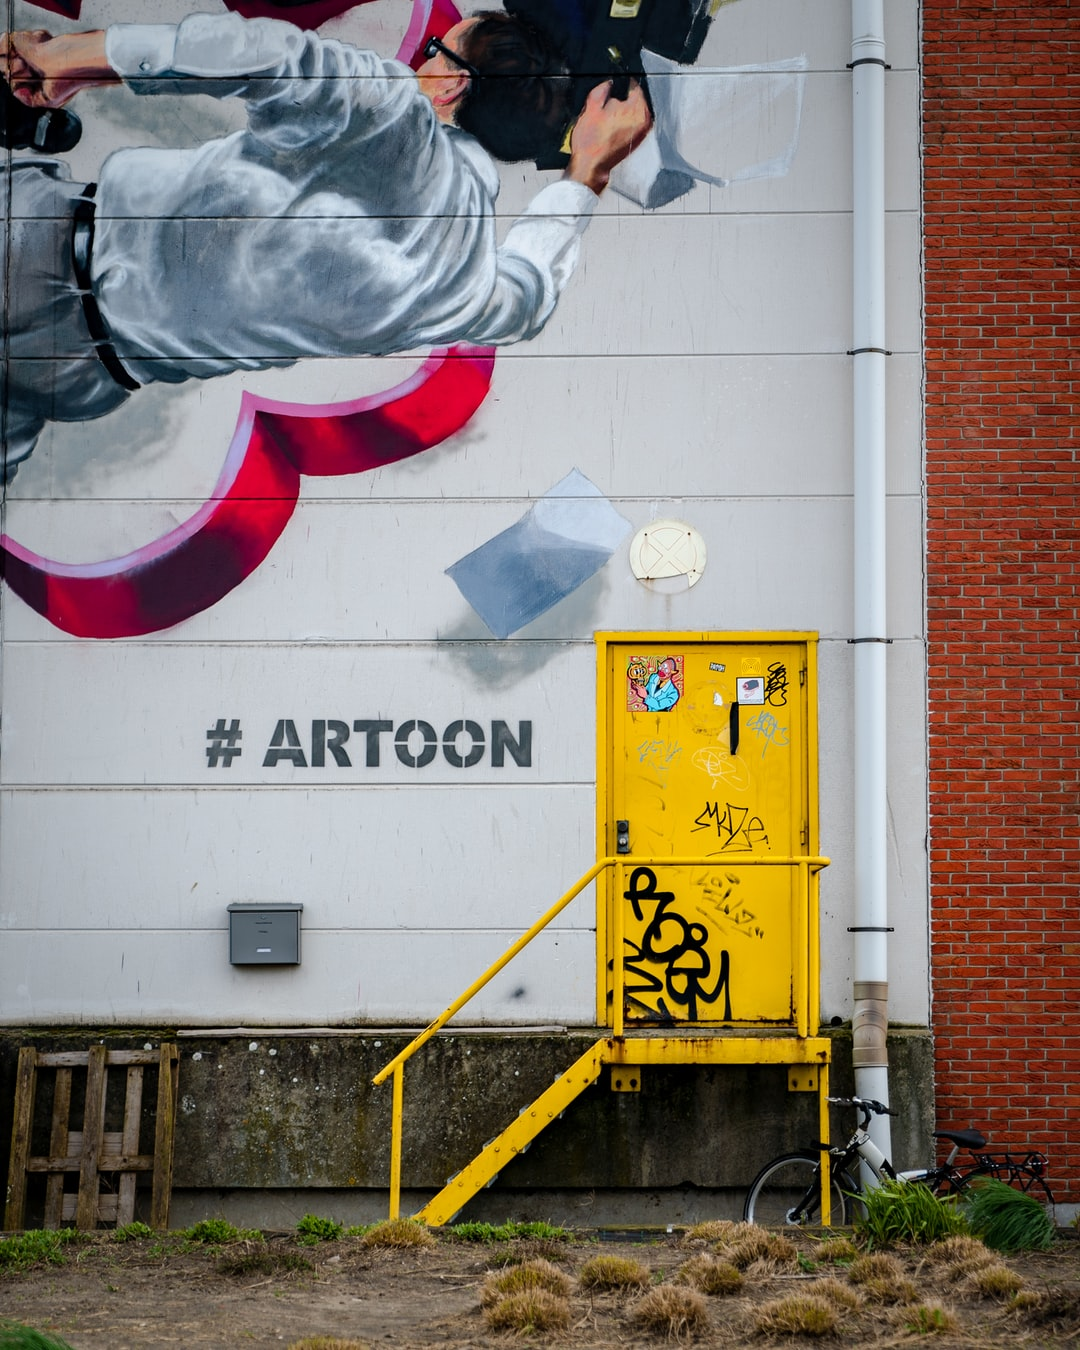 Grafitti in Antwerpen. This is a warehouse at the harbour with a stylish yellow door and #artoon.